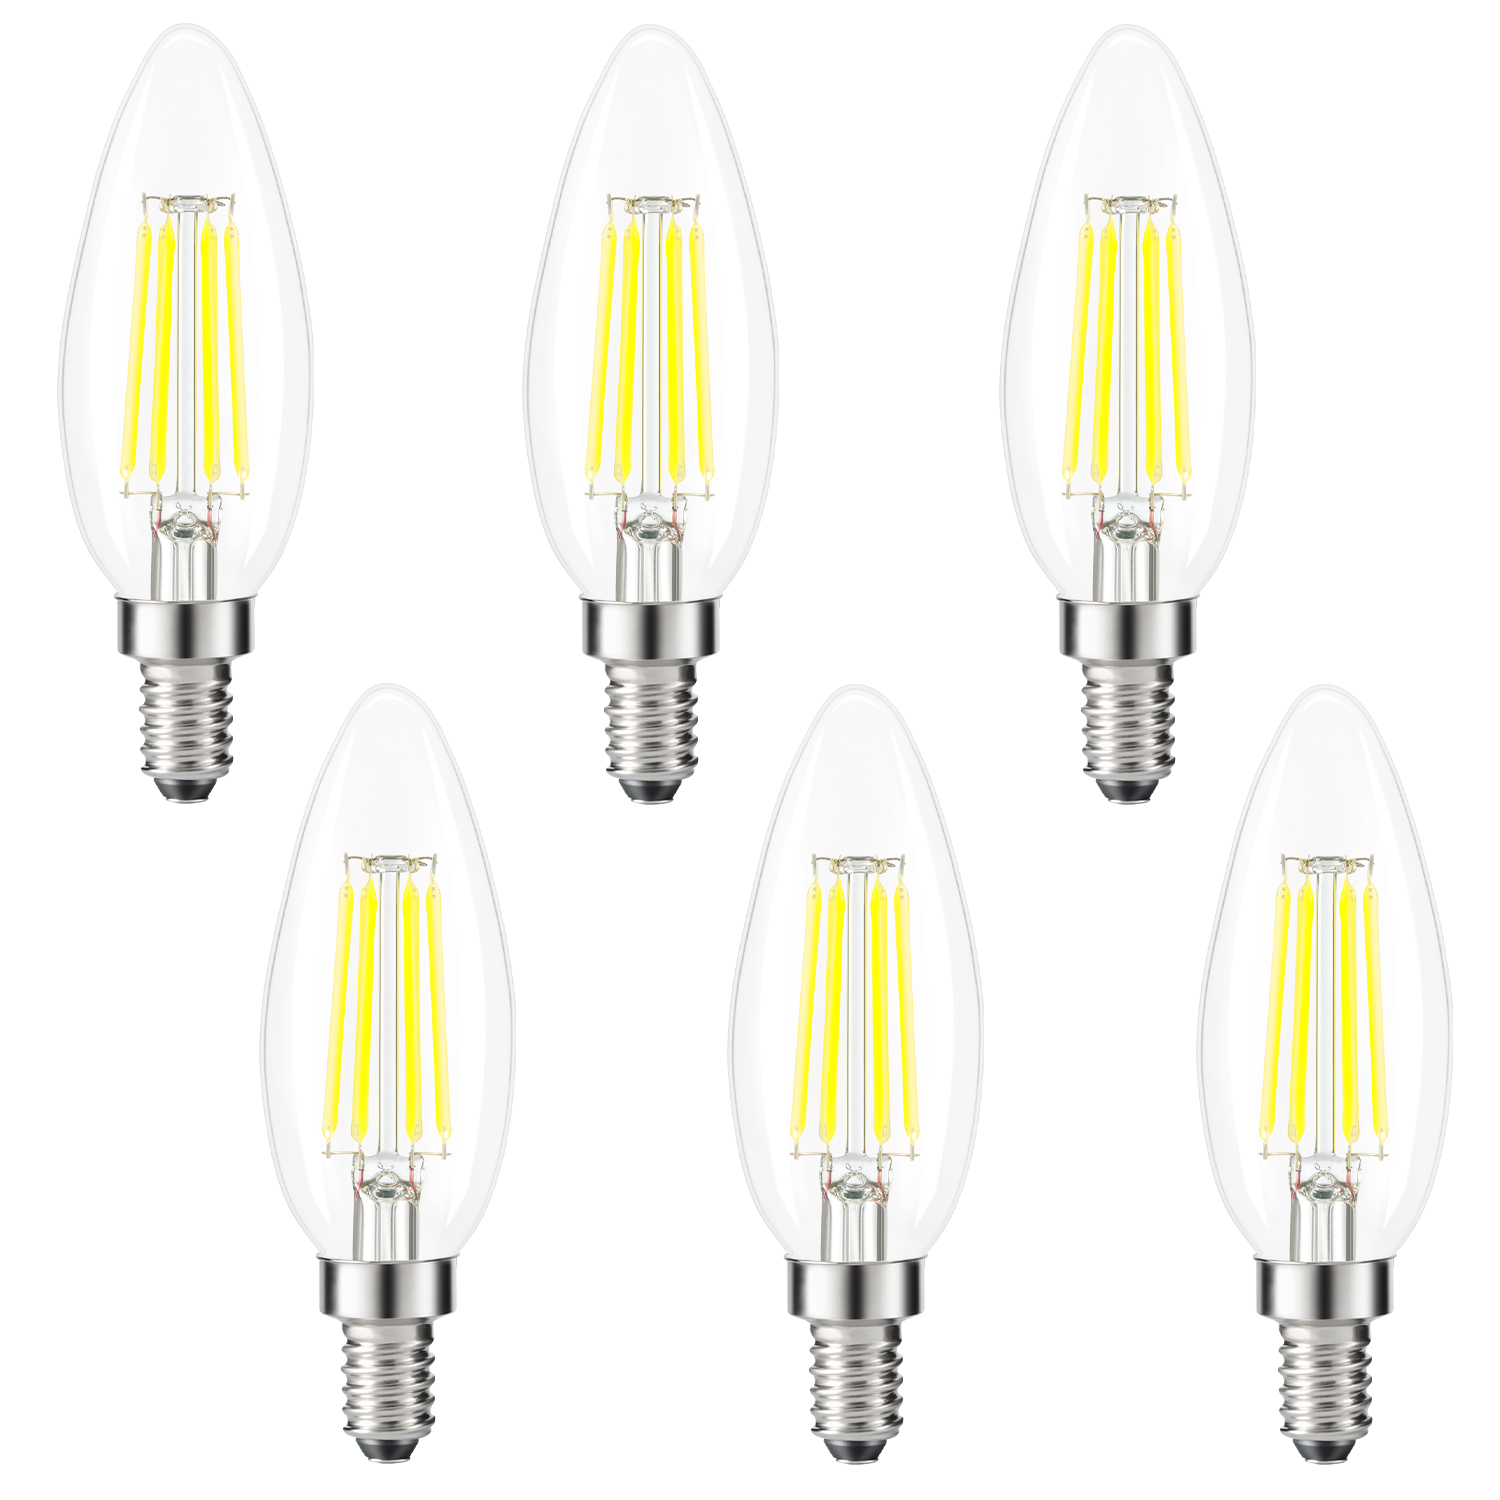 kohree edison candelabra bulb e12 led bulb b10 candle light bulb 40w equivalent 5000k daylight white